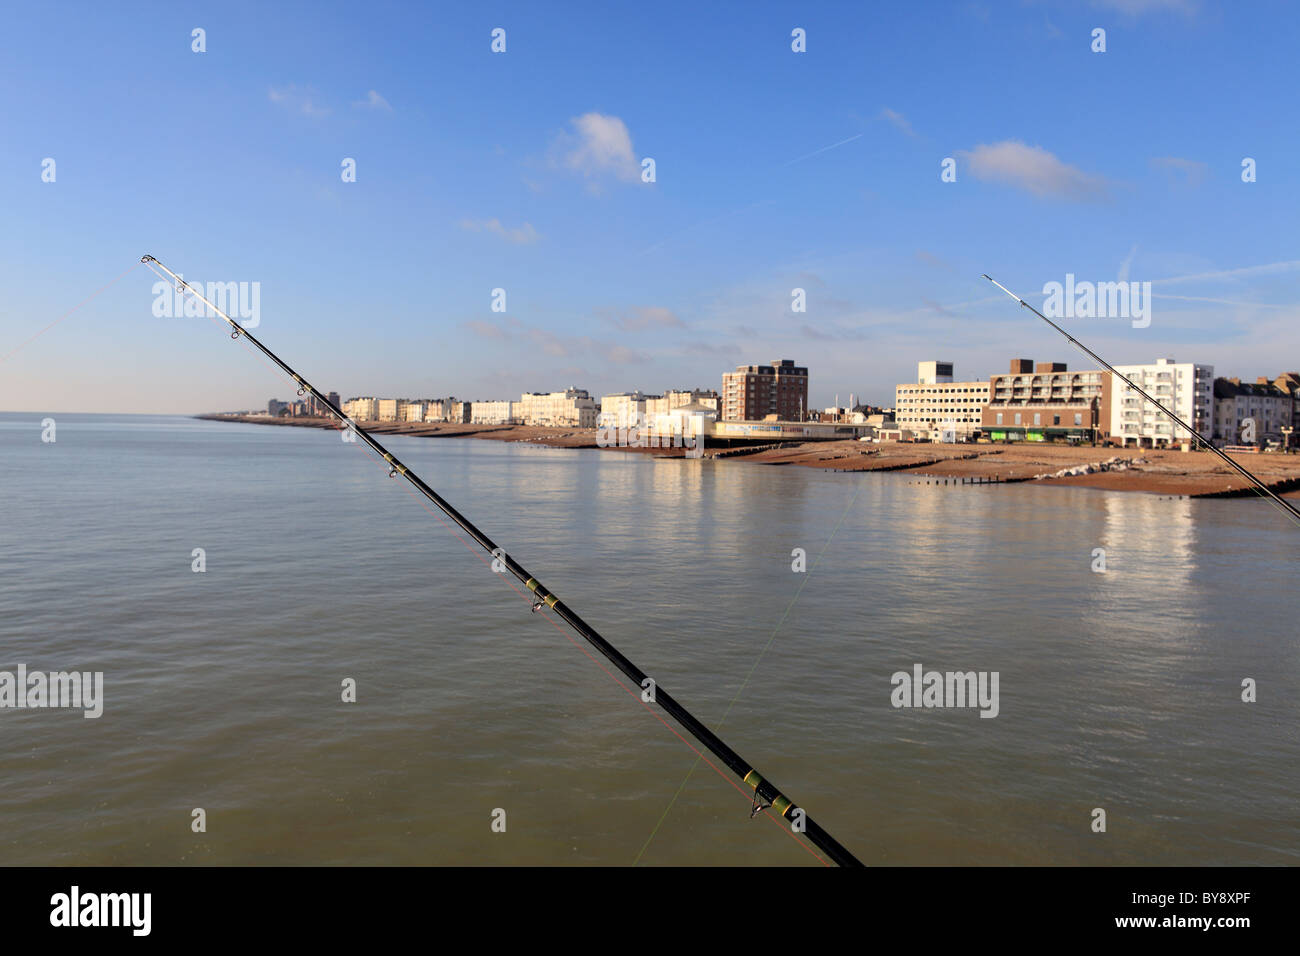 Regno Unito west sussex worthing angling sul molo Immagini Stock